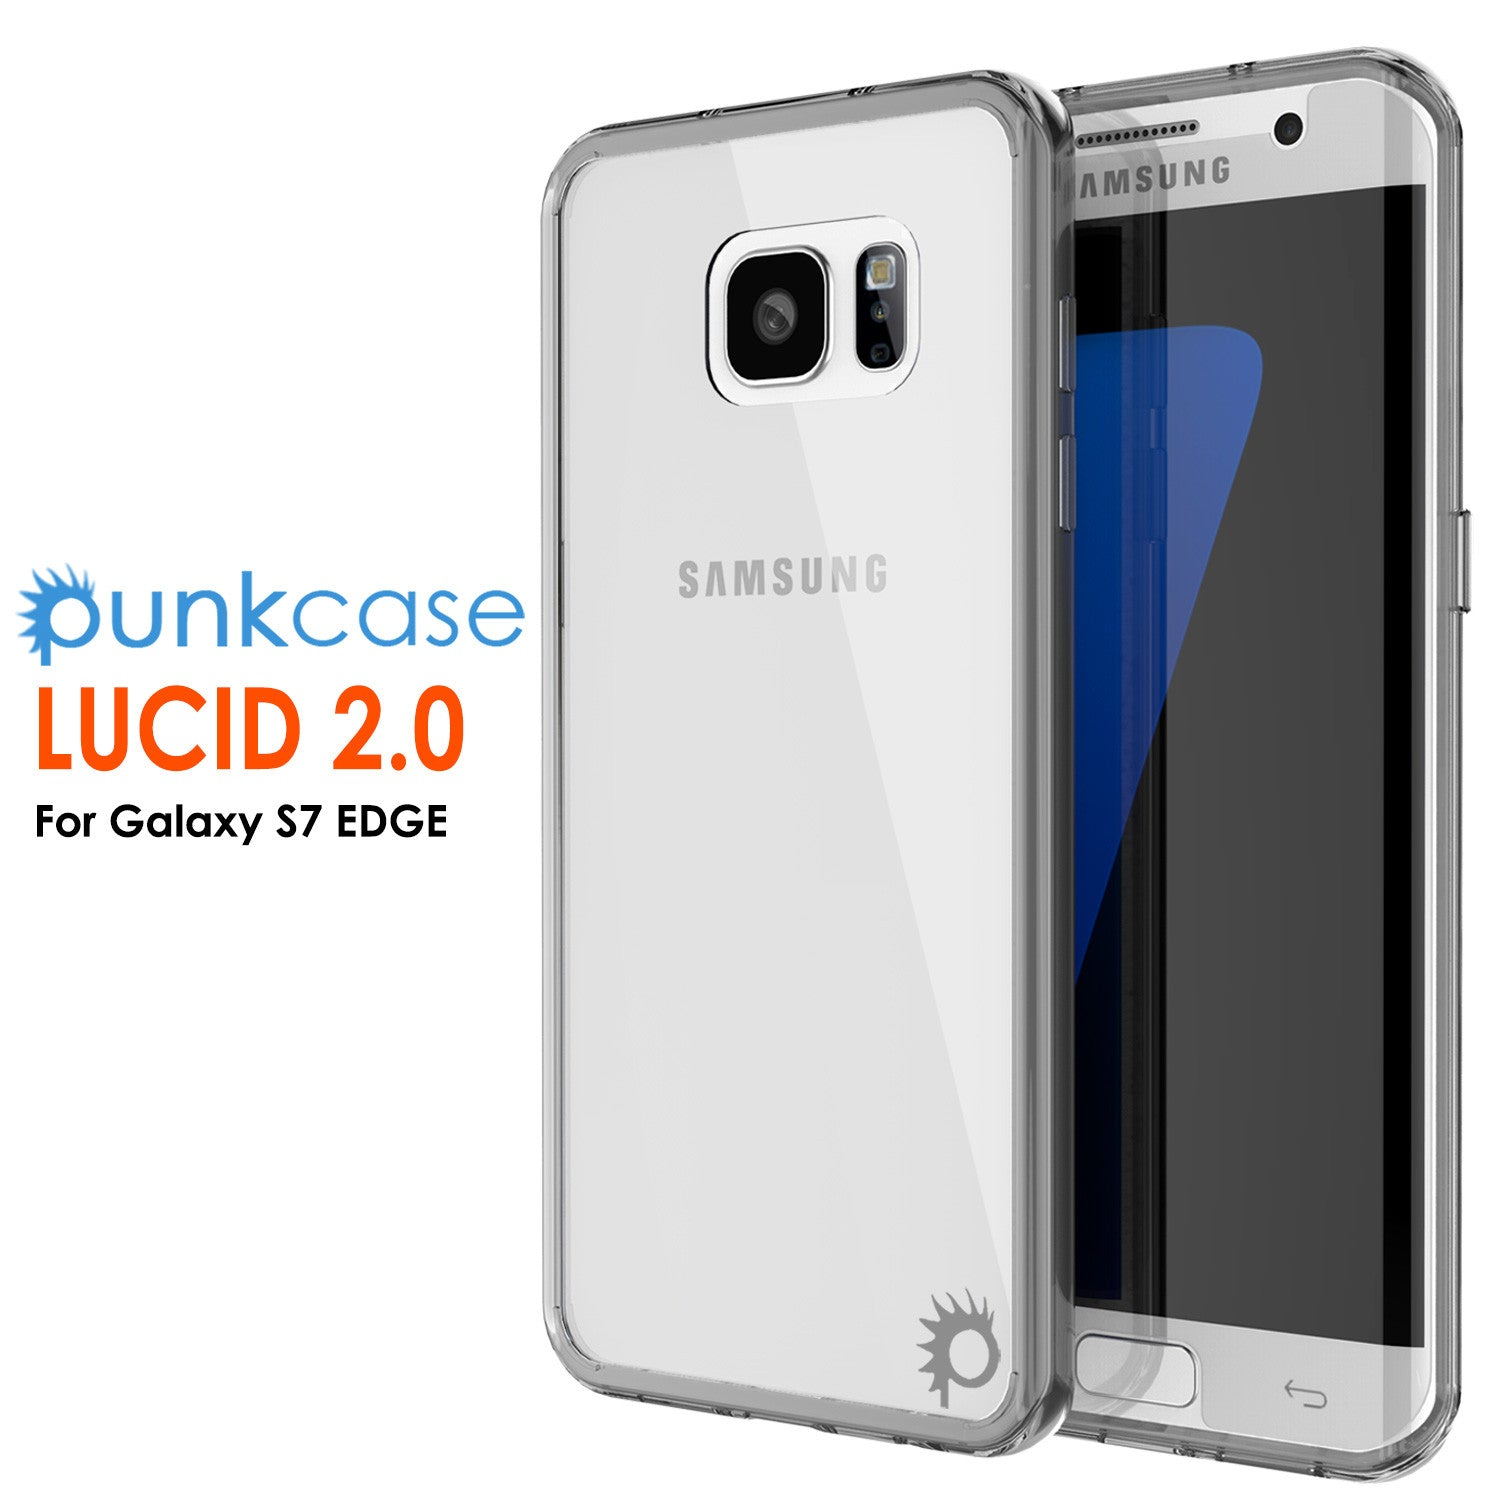 S7 Edge Case Punkcase® LUCID 2.0 Crystal Black Series w/ PUNK SHIELD Screen Protector | Ultra Fit